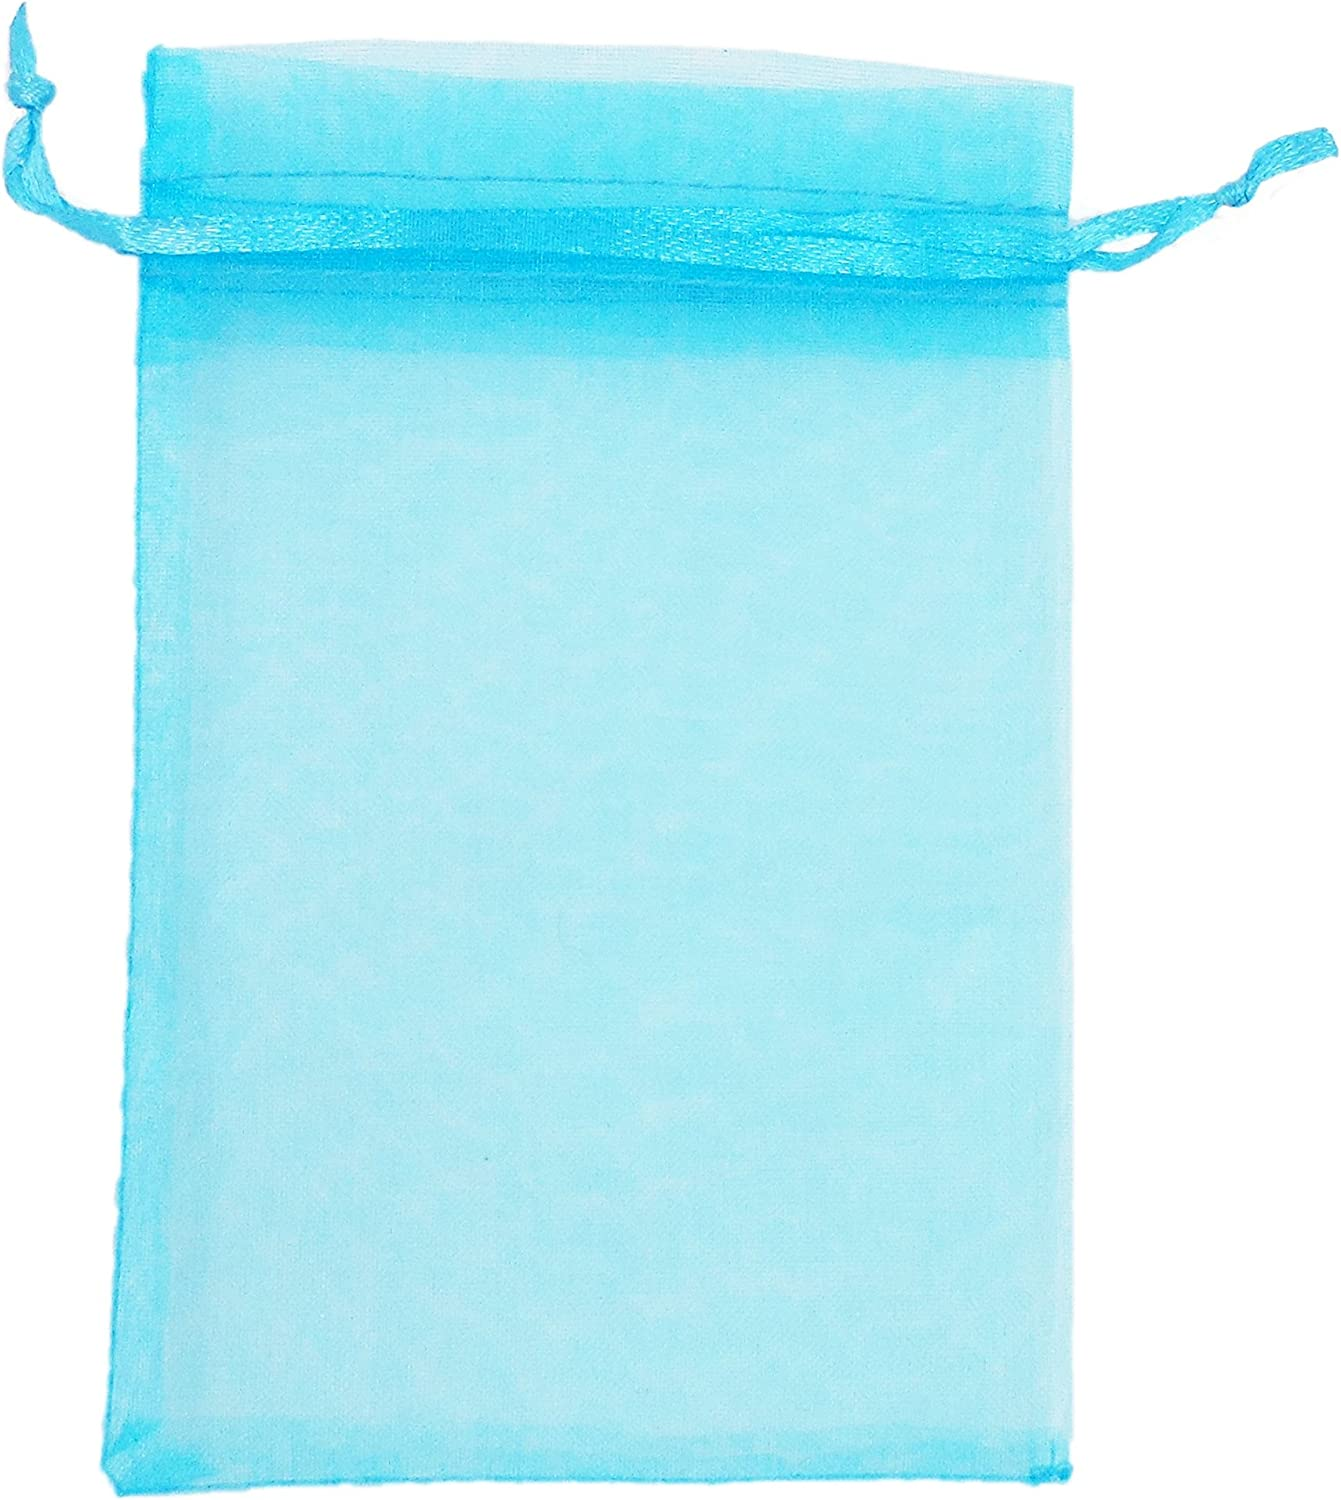 ATCG 100pcs 5x7 Inches Drawstring Organza Pouches Wedding Party Favor Gift Candy Bags (Pack of 100pcs) (AQUA BLUE) 815MUGiF5OL